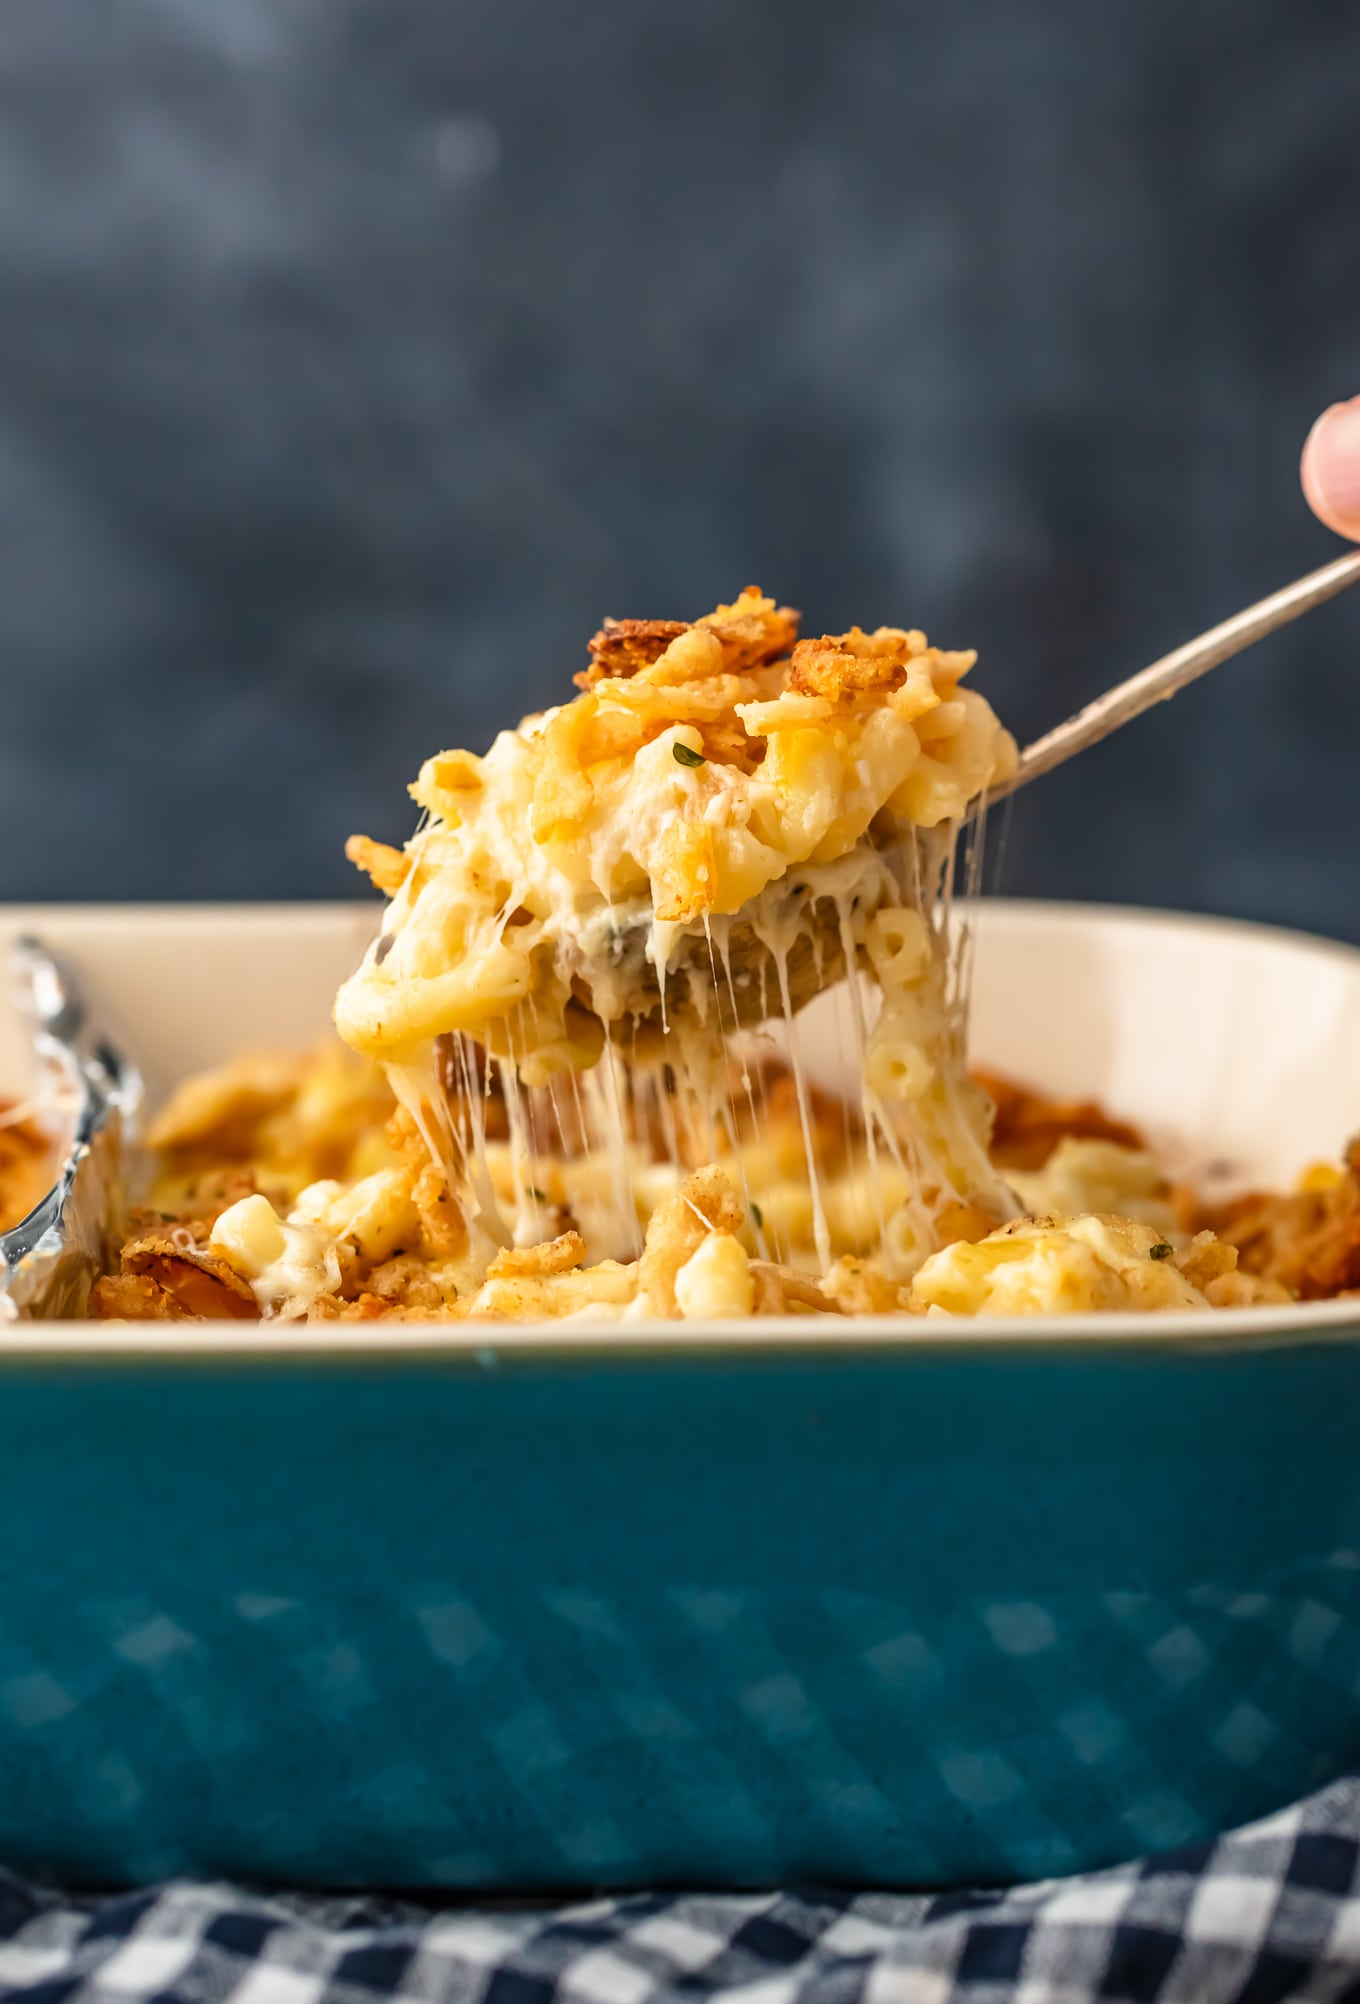 lifting up a spoonful of cheesy baked macaroni and cheese casserole